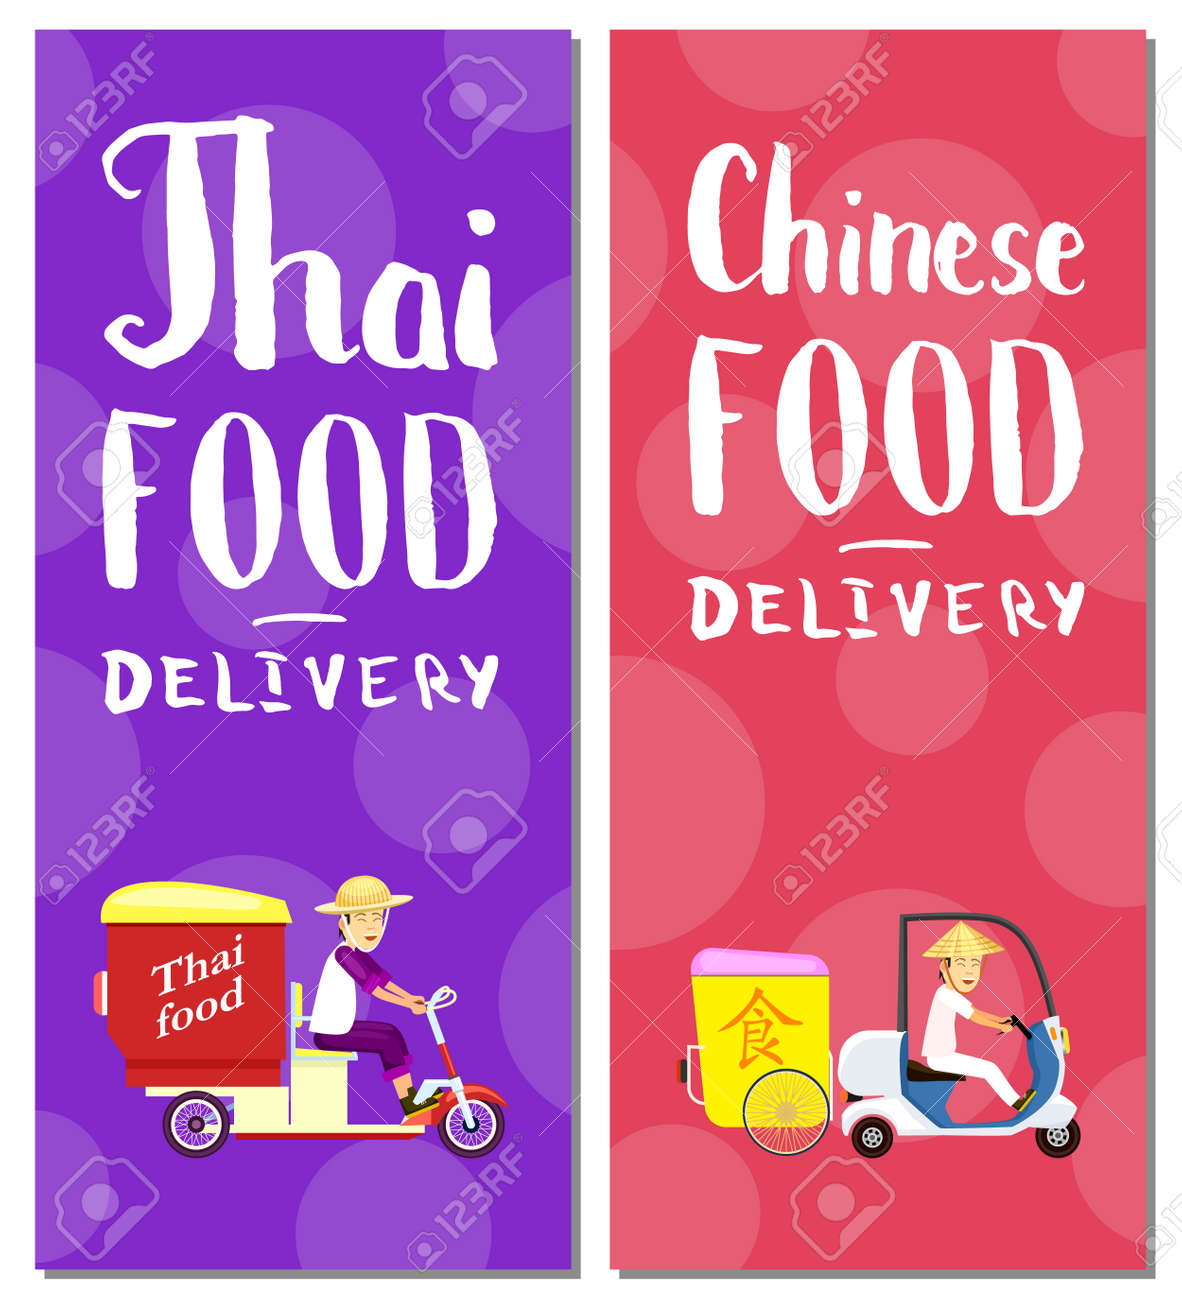 thai and chinese fast food delivery flyers online order food on home commercial shipping